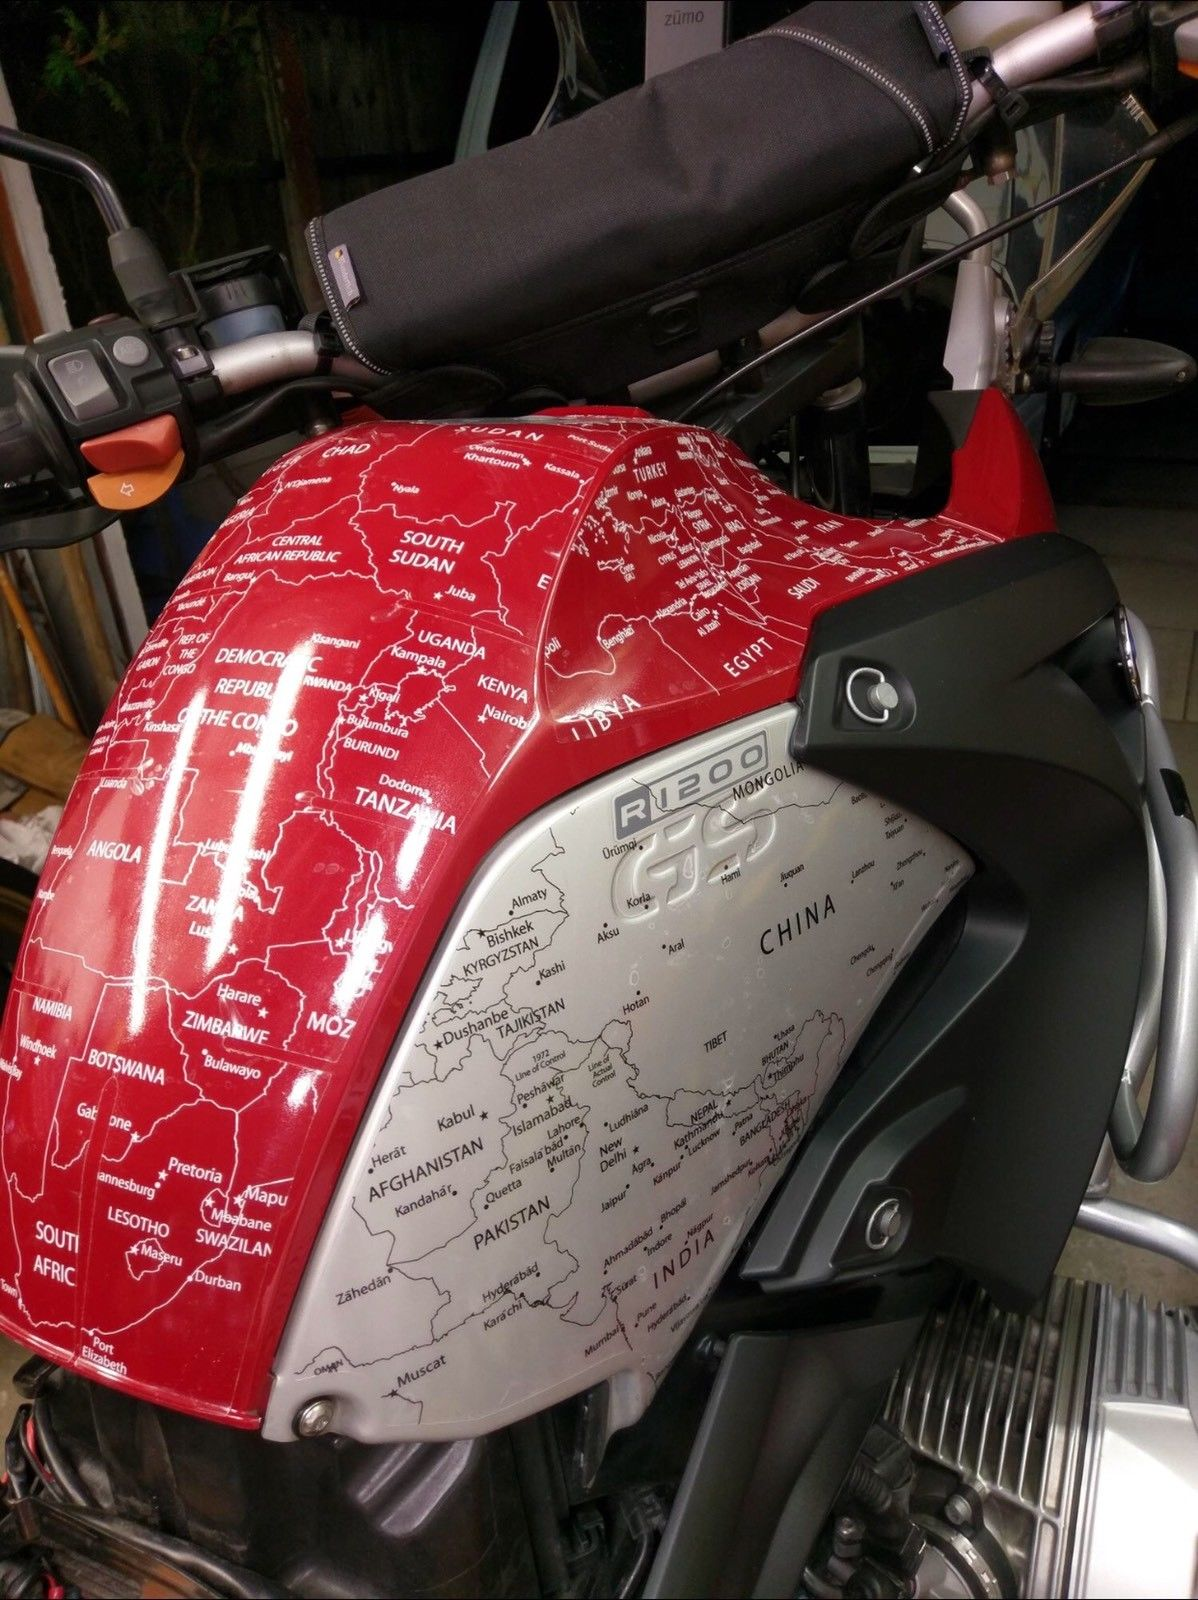 BMW R1200GS 2004 to 2007 BMW World Stickers and Decals Tank Top Aerial Full View White Map Transparent Decals On Red Bike